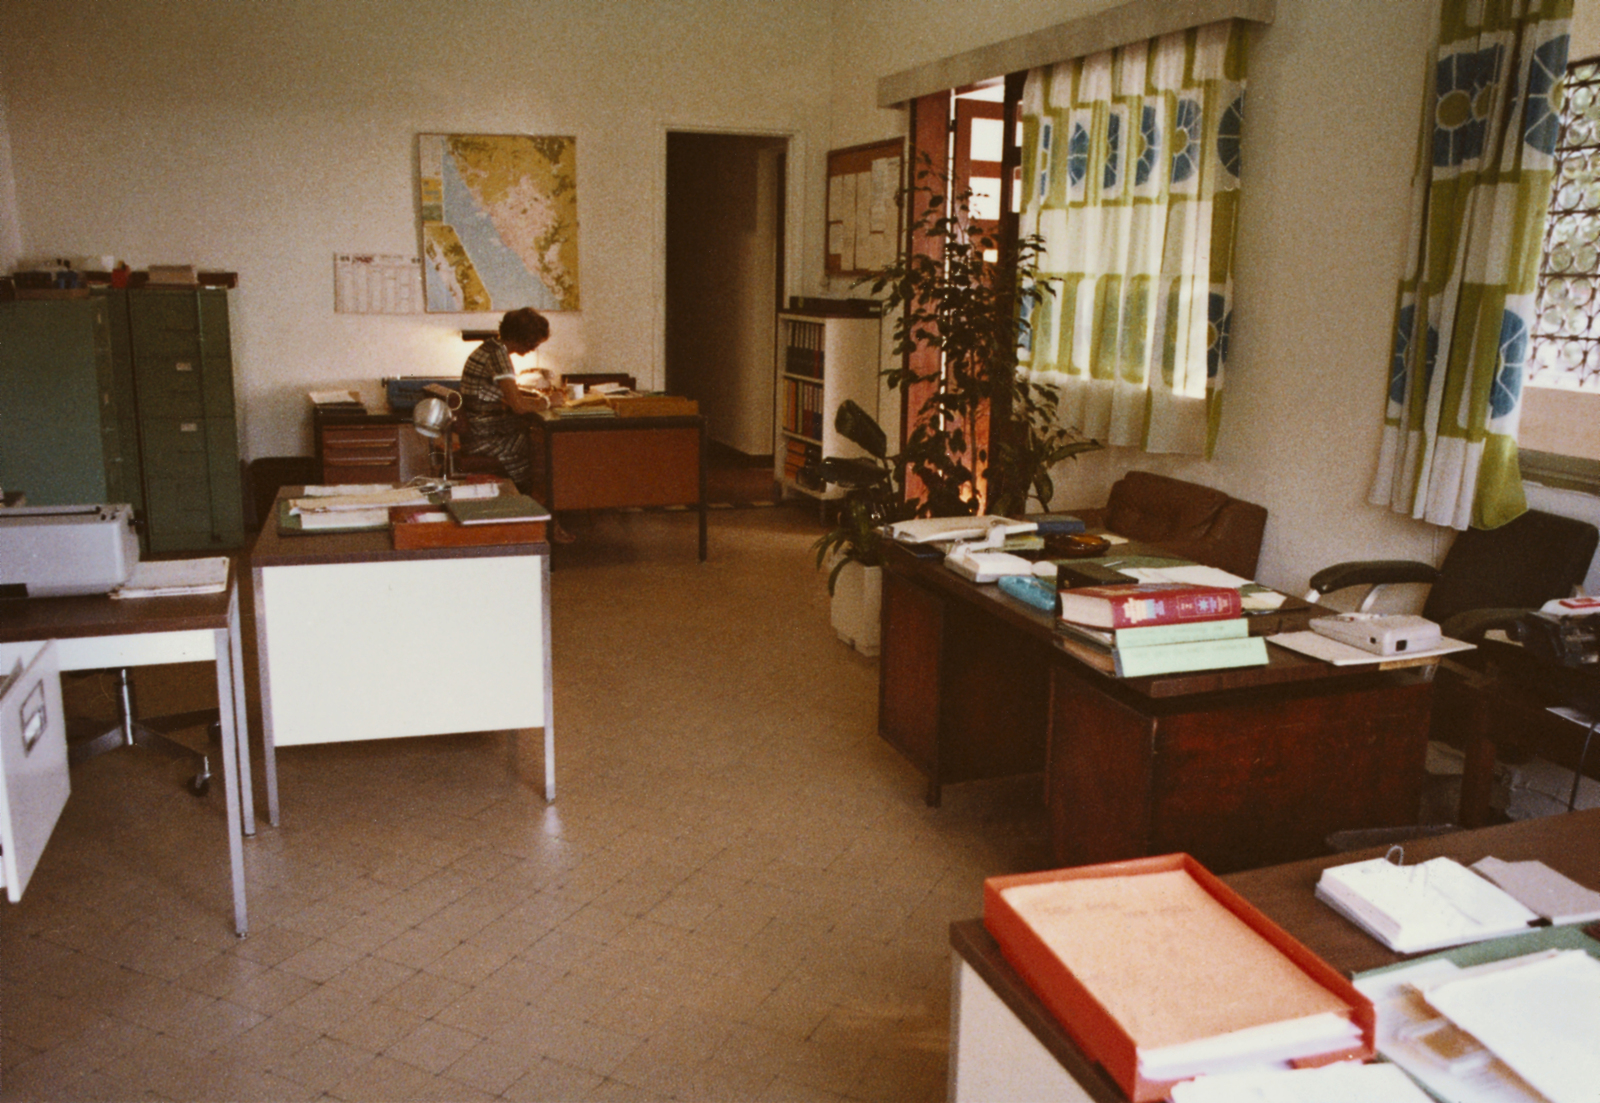 Libreville - Chancery Office Building - 1979